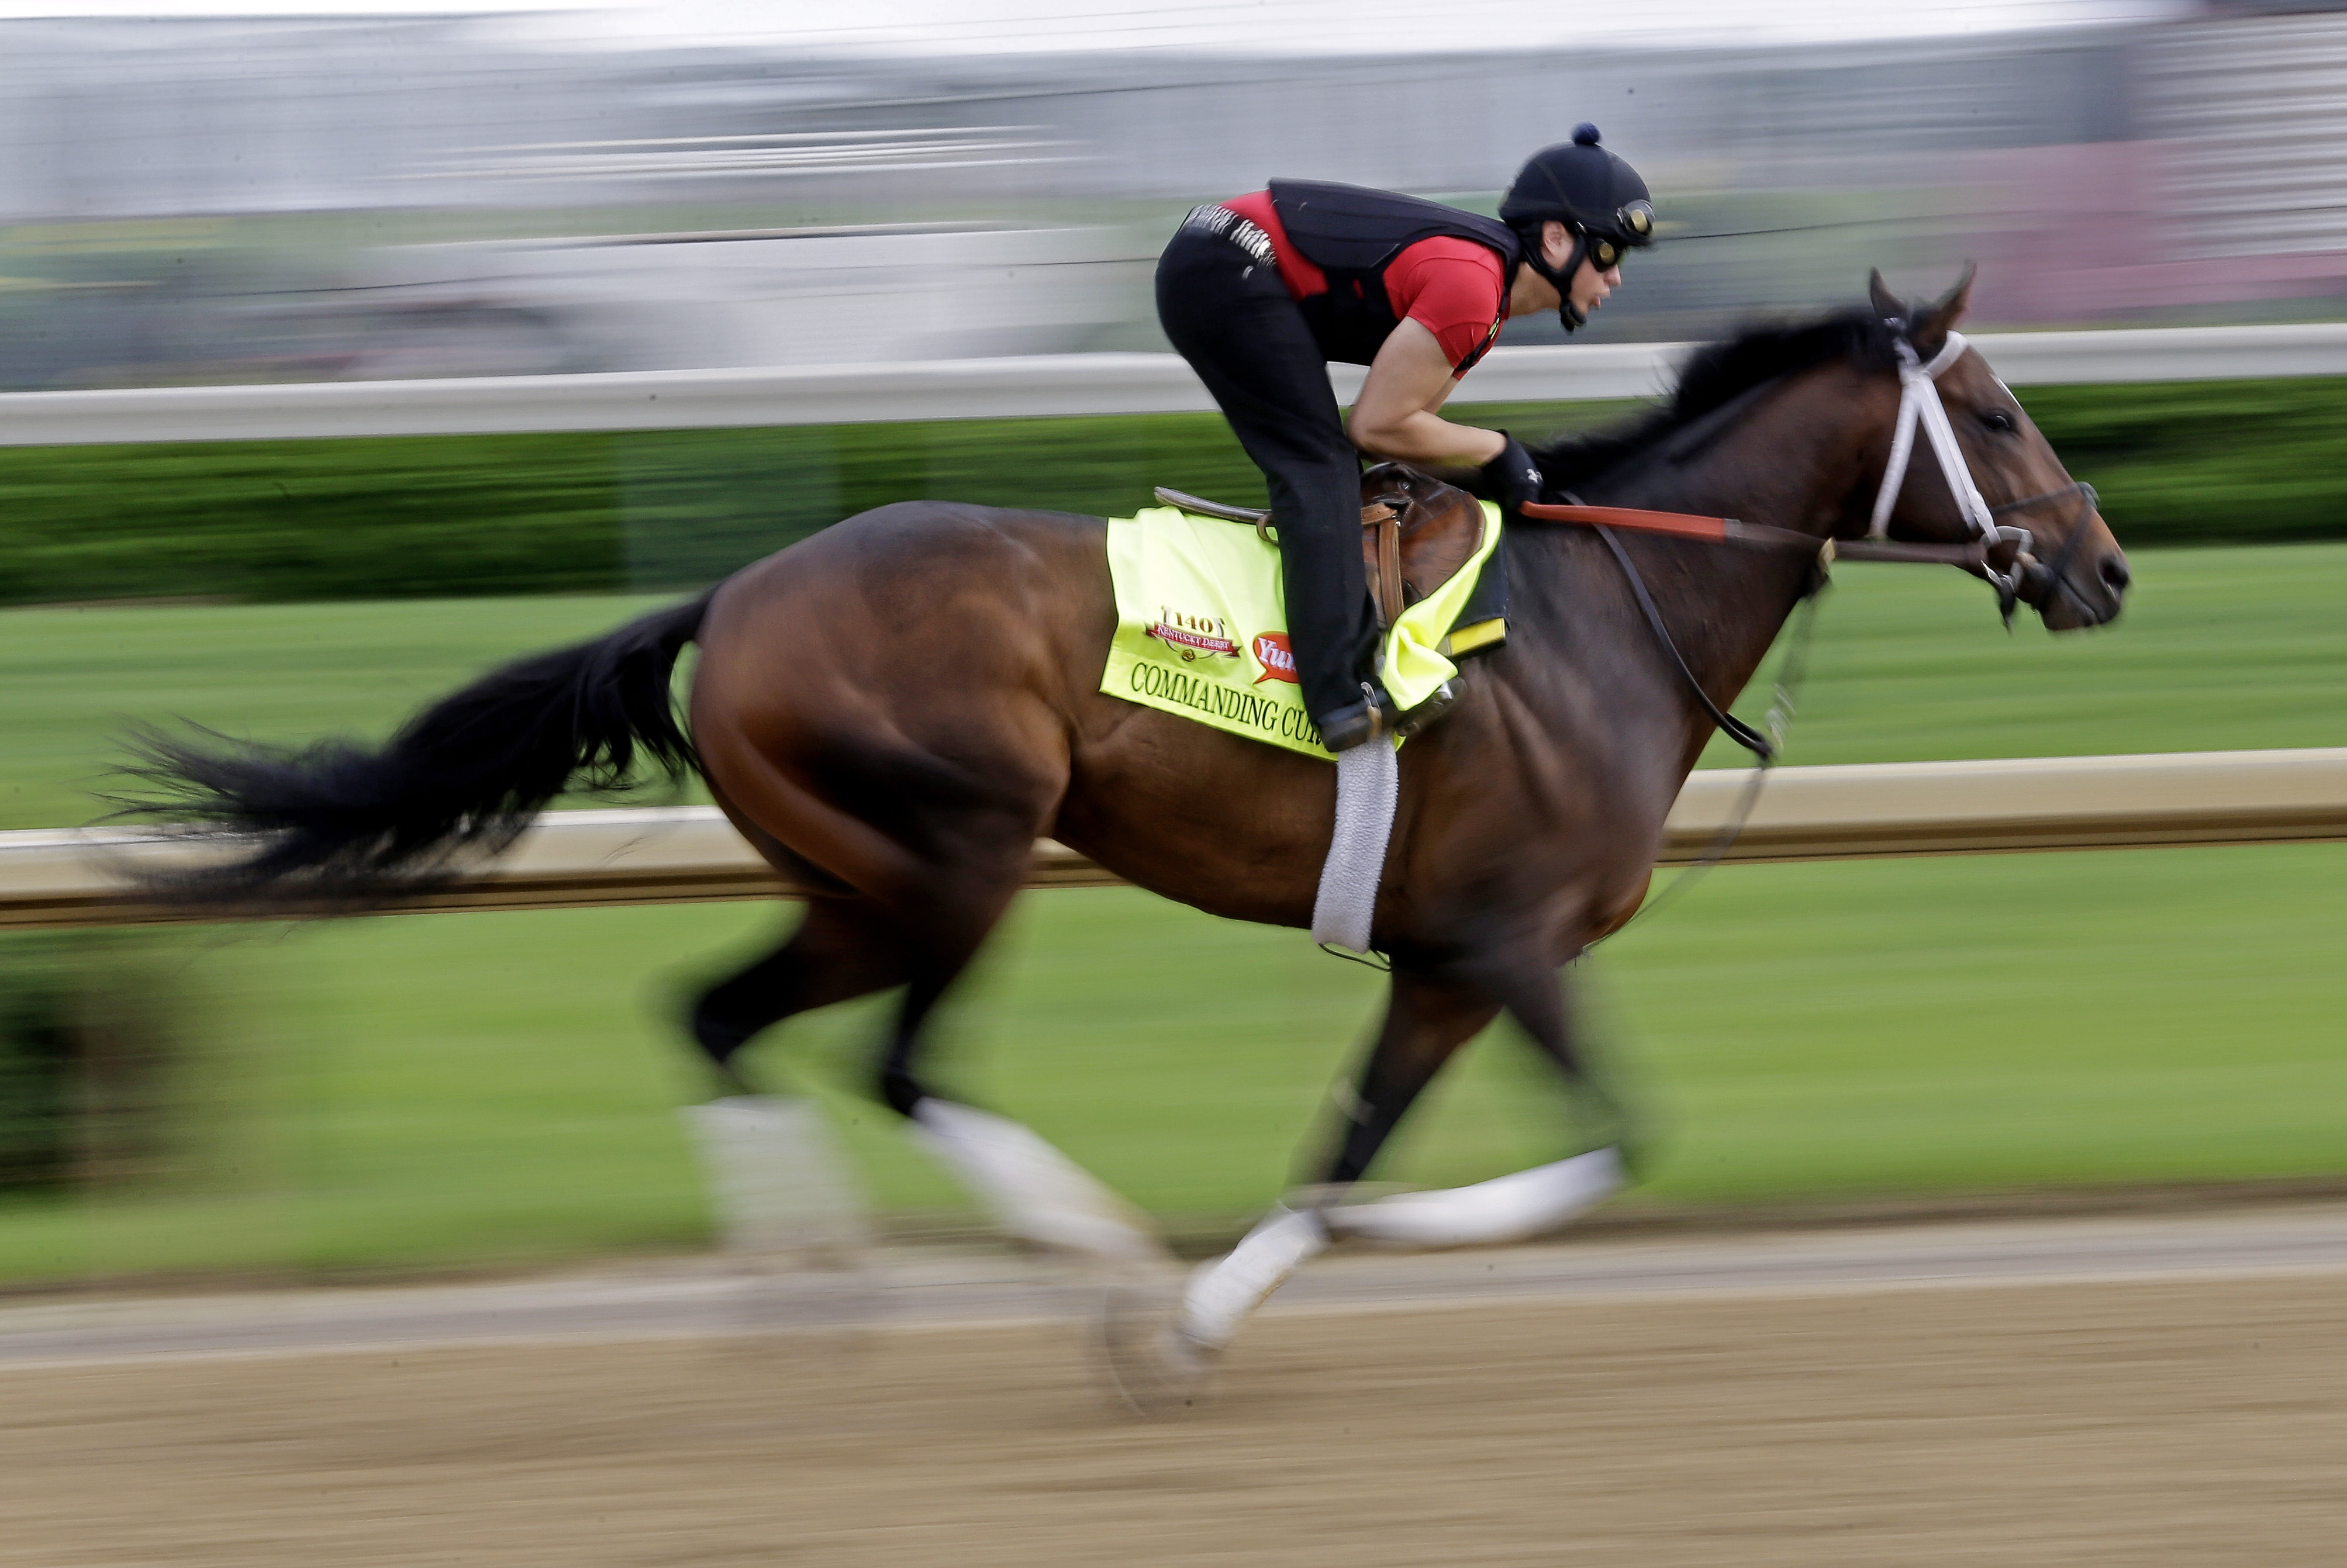 Commanding Curve finished second in the Kentucky Derby to California Chrome and is a son of former Belmont champion A.P. Indy.